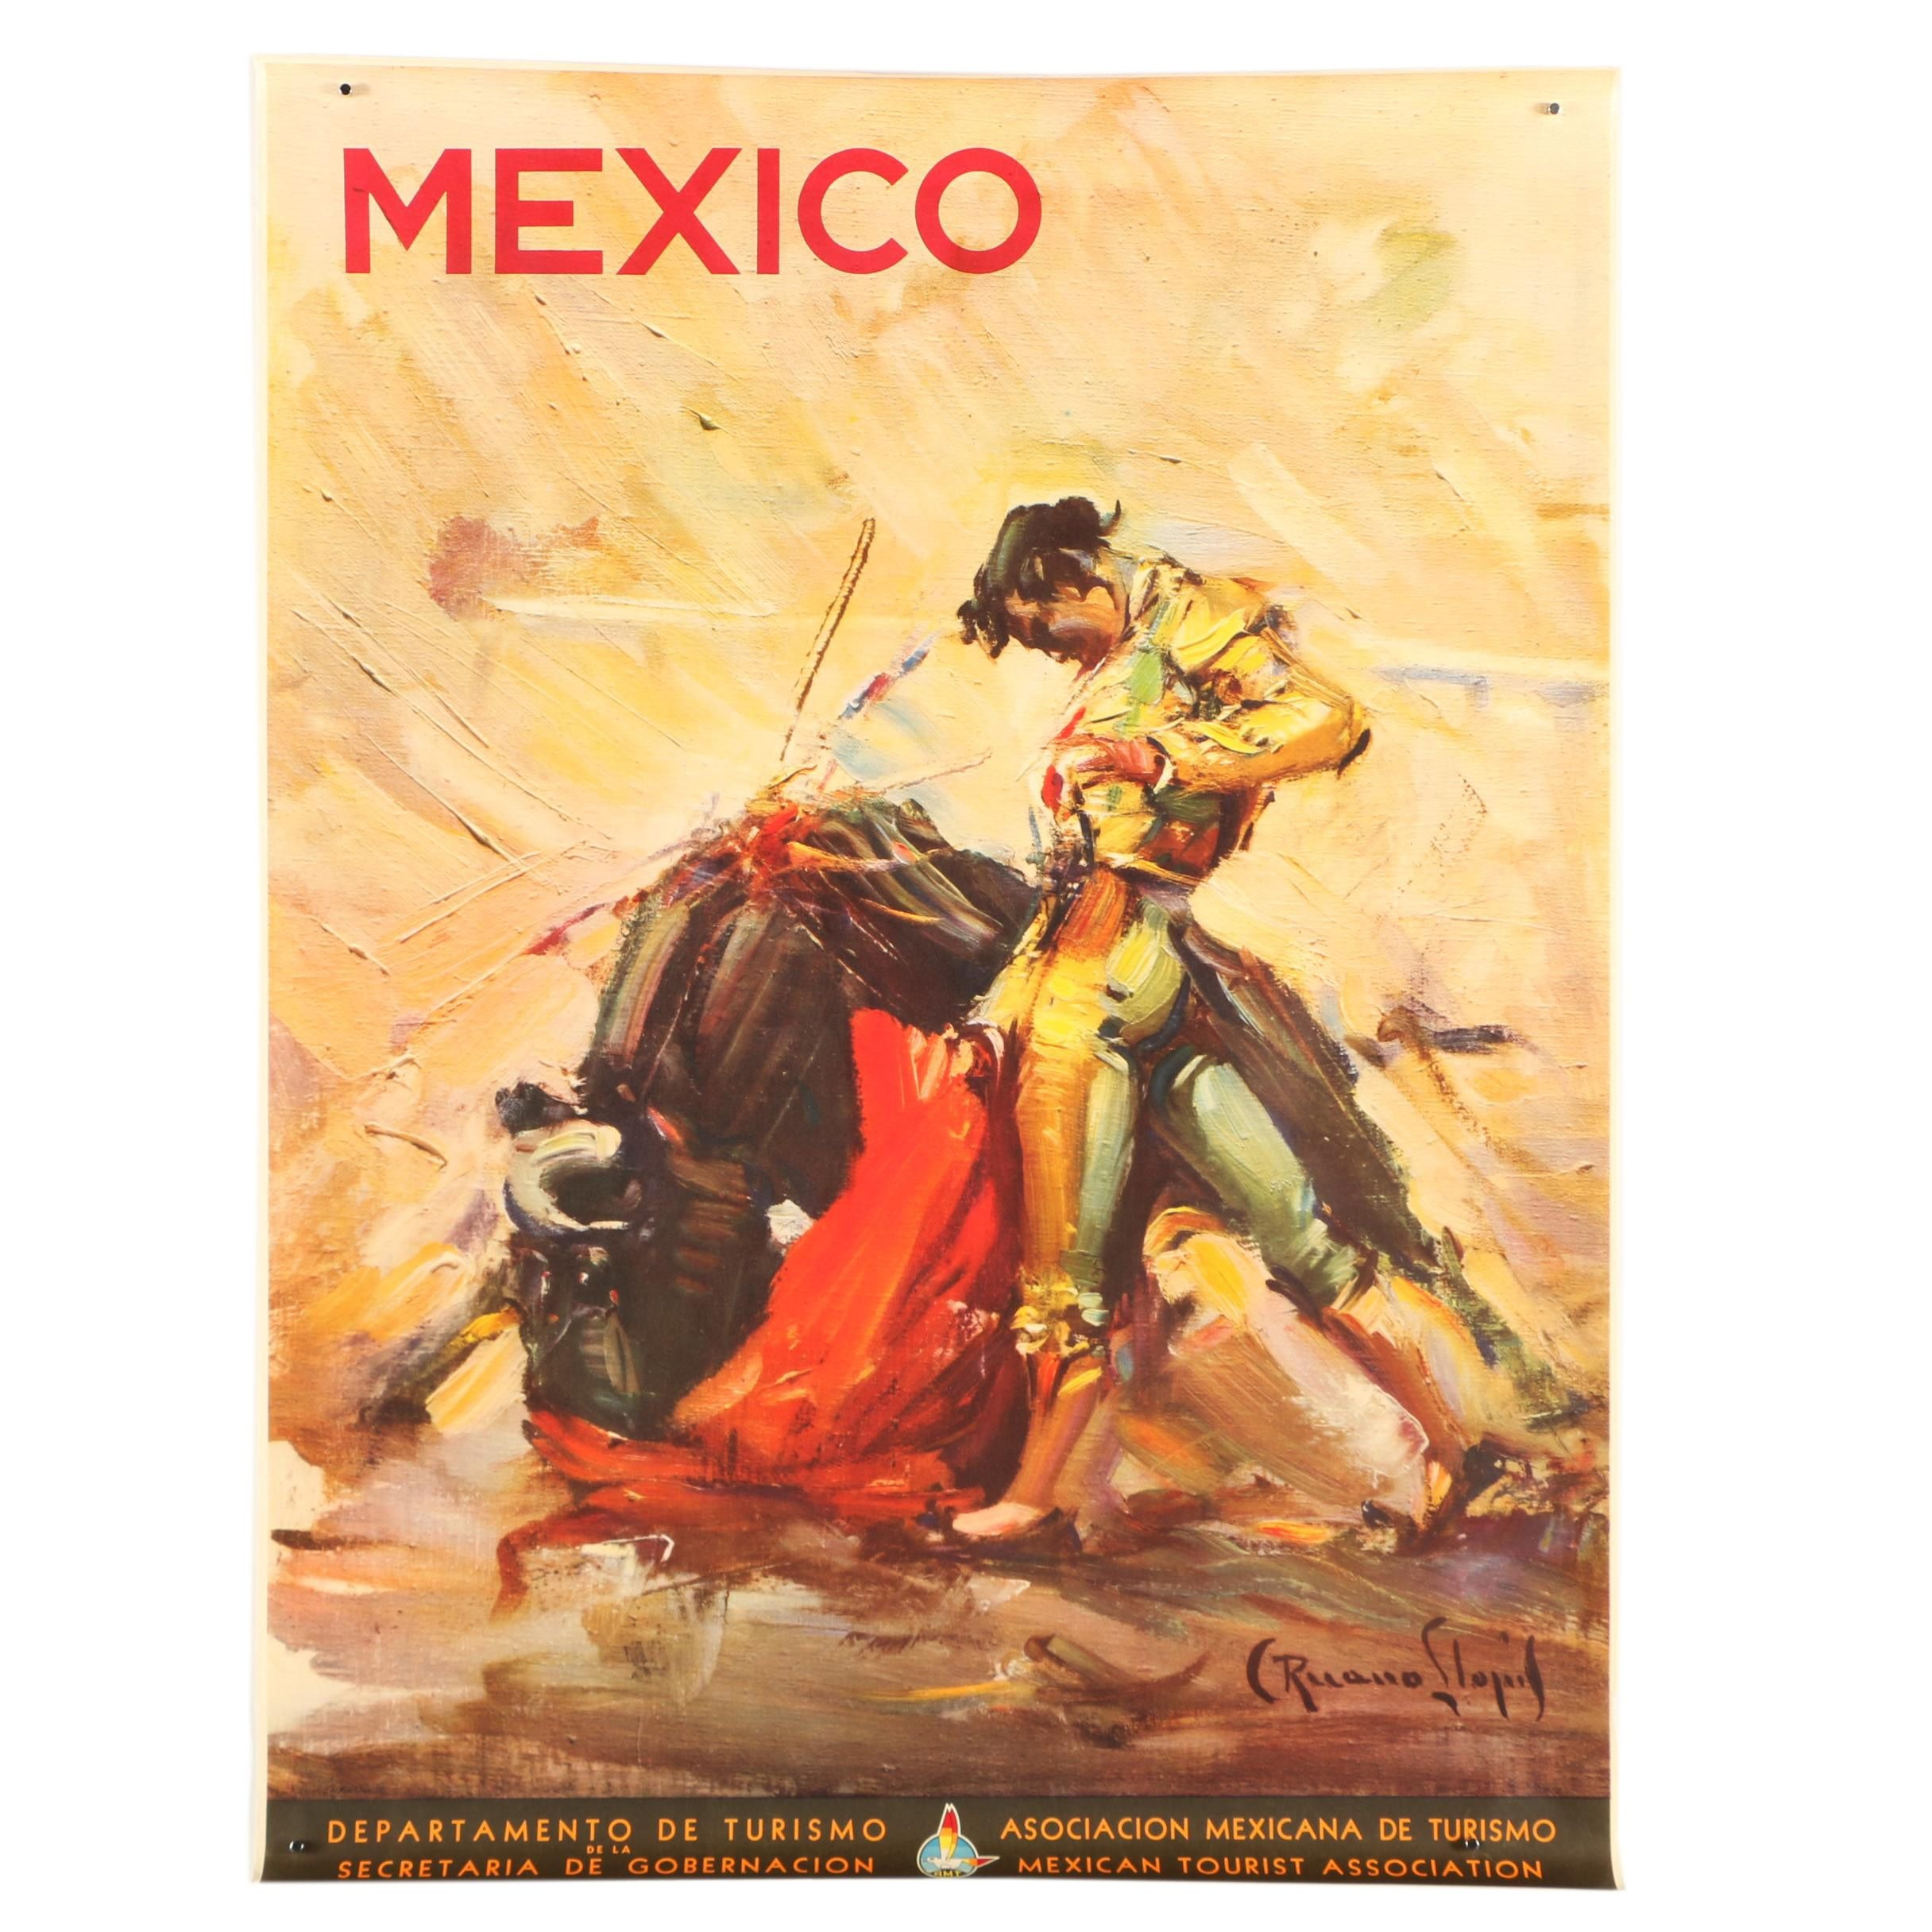 Offset Lithograph After Mexico Department of Tourism Poster